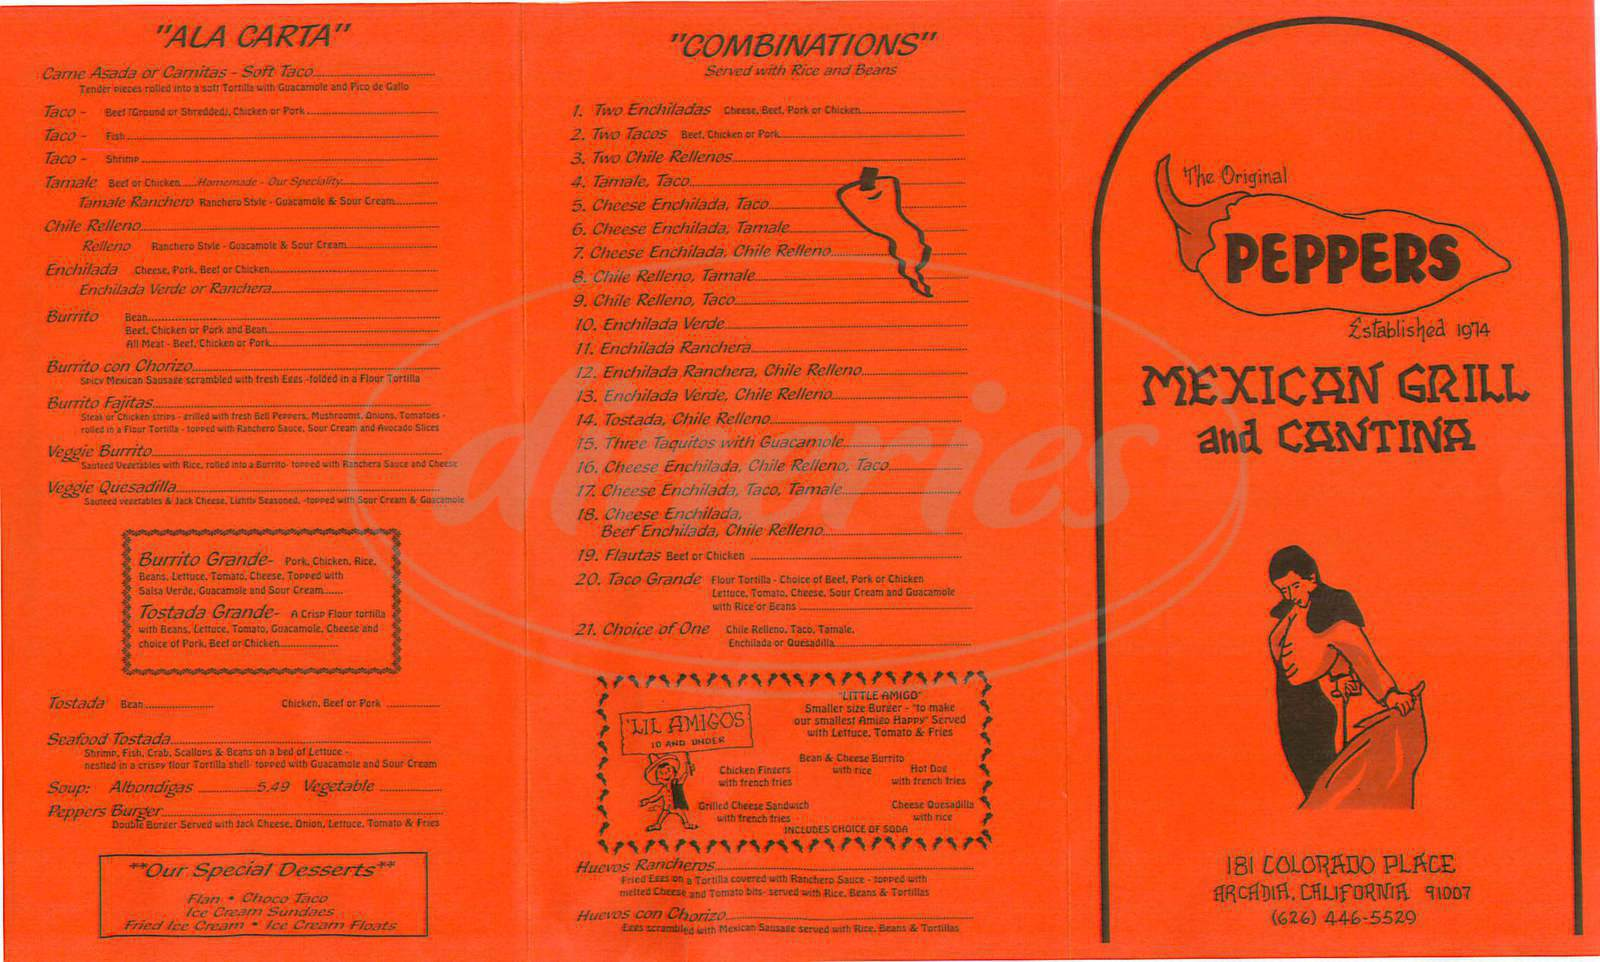 menu for Peppers Mexican Grill & Cantinia